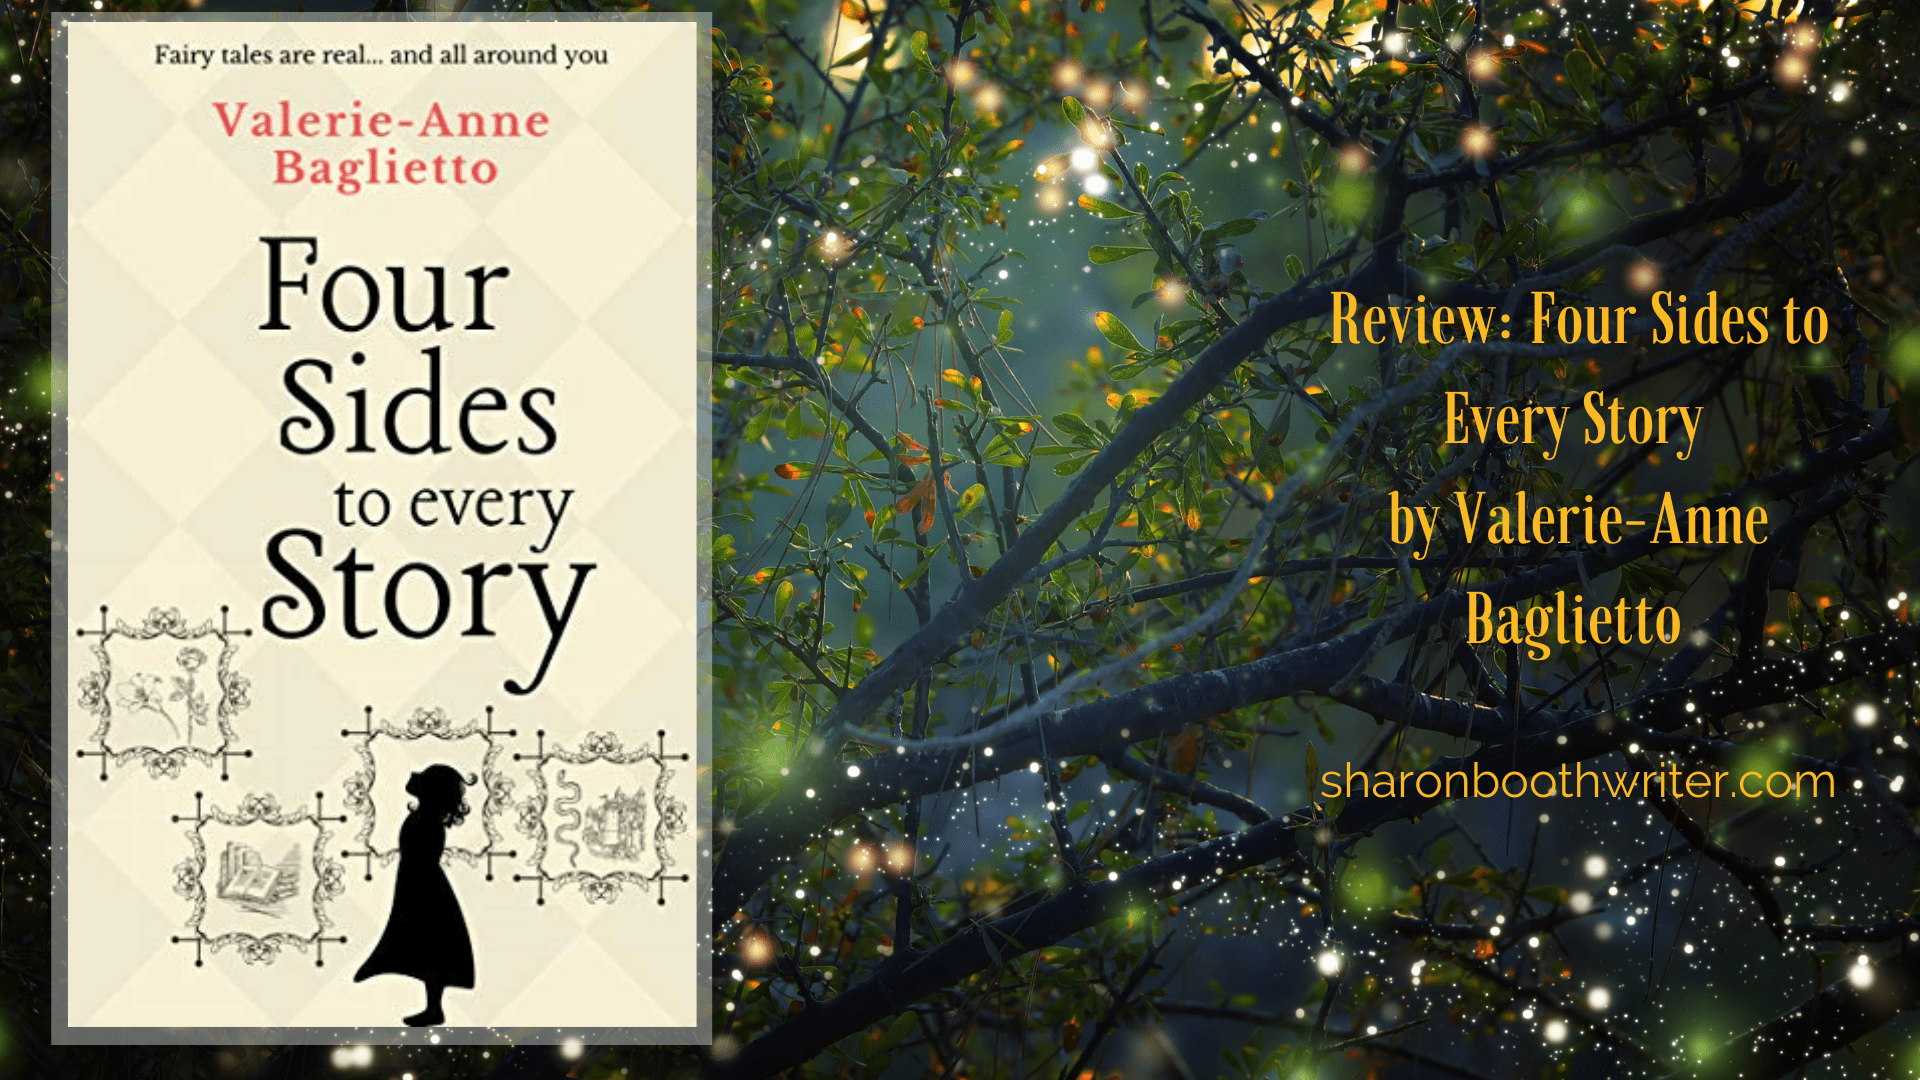 Four Sides to Every Story by Valerie-Anne Baglietto